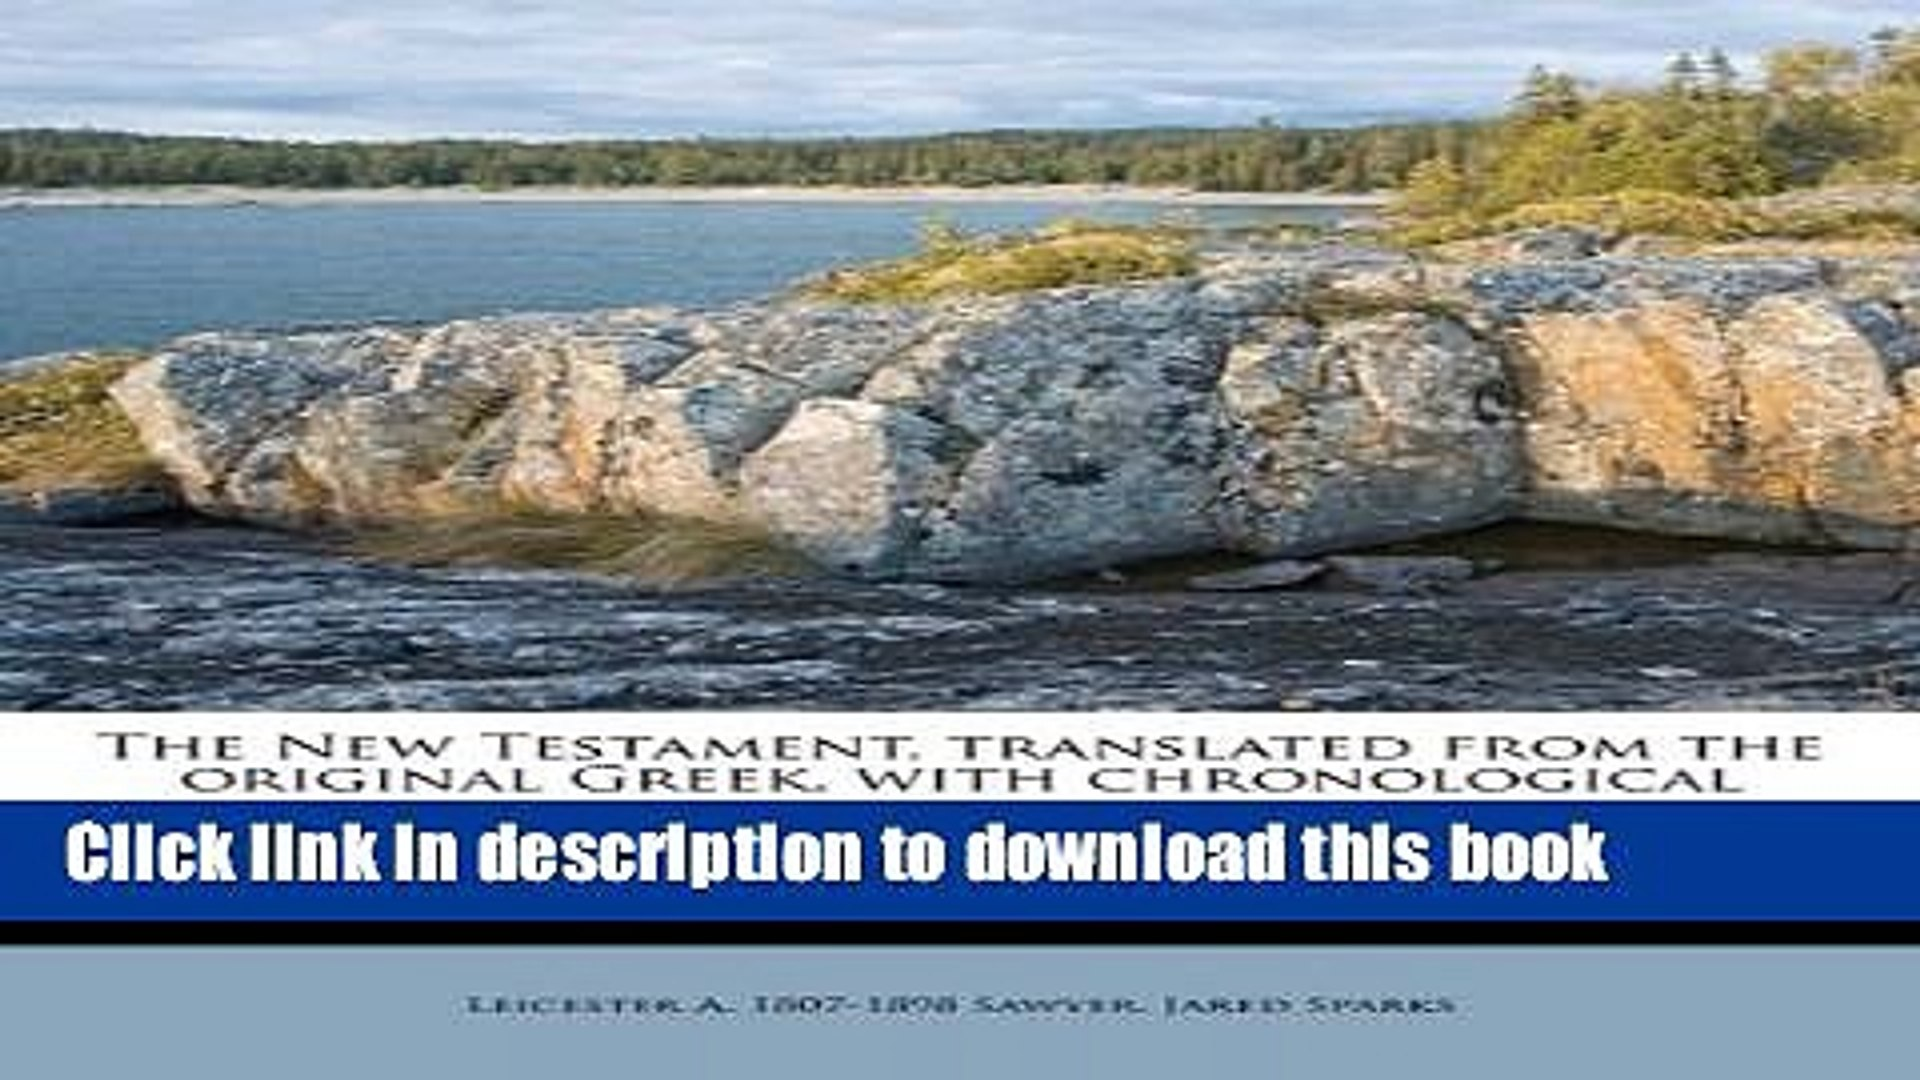 Ebook The New Testament, Translated from the Original Greek, with Chronological Arrangement of the